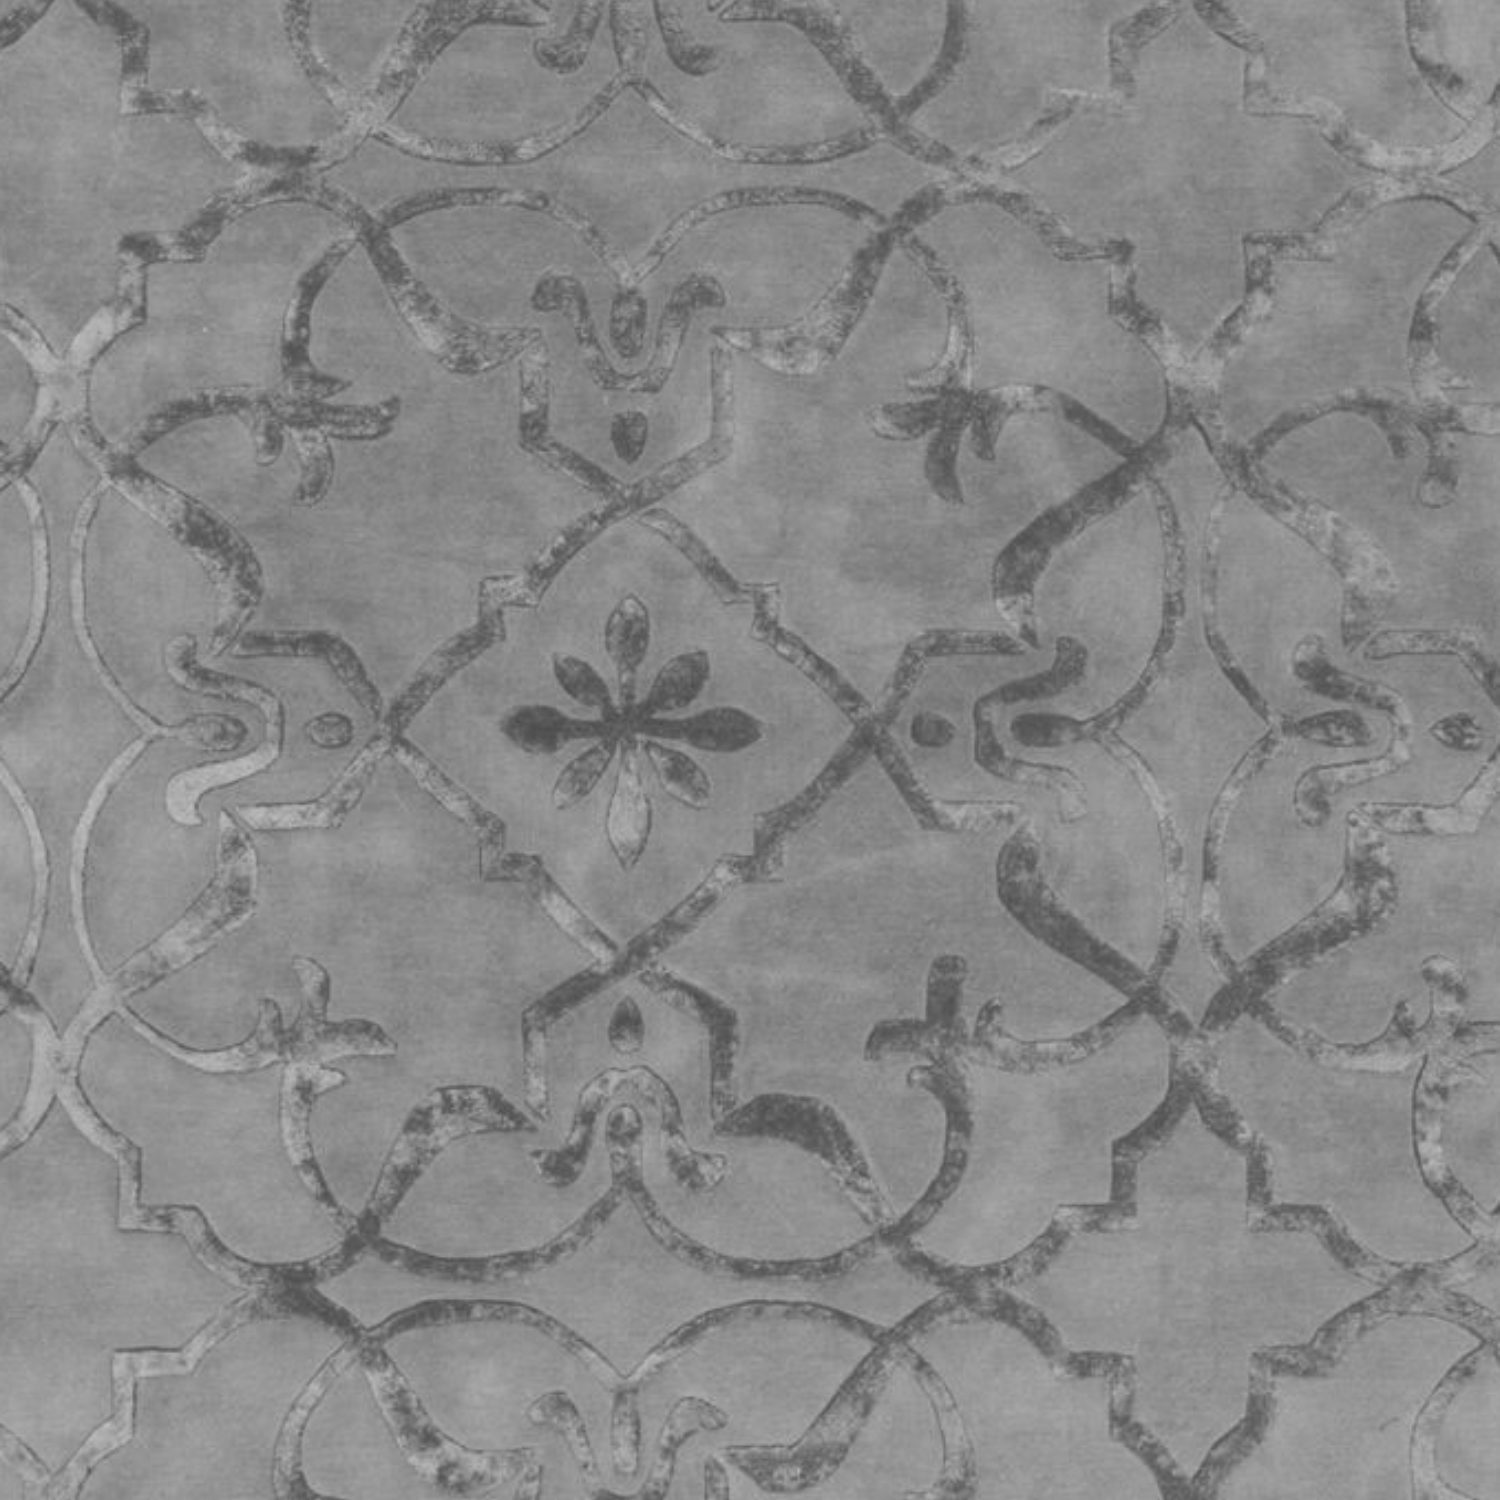 Inspired by old embossed wallpaper from the 19th century.